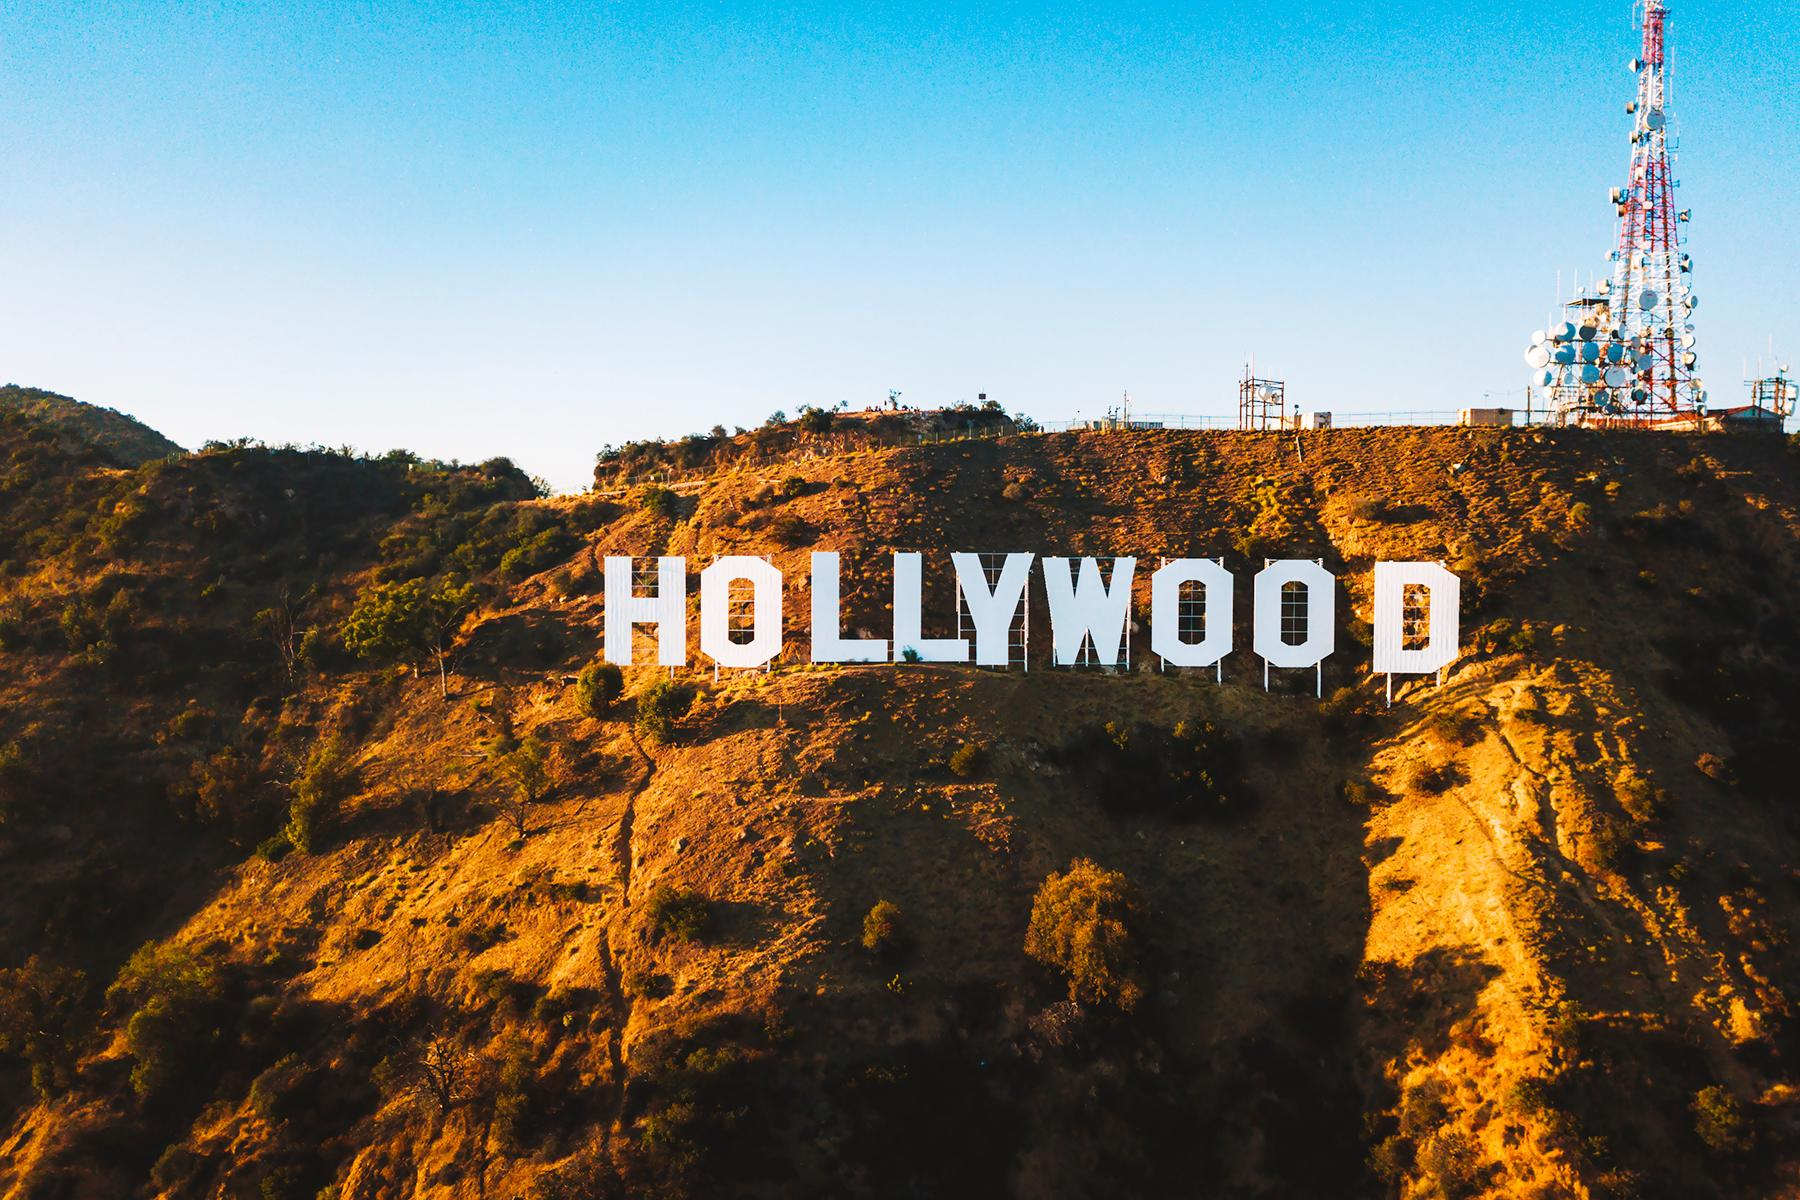 15_20USPlacestoSeeBeforeYouDie__HollywoodSign_shutterstock_1211984116